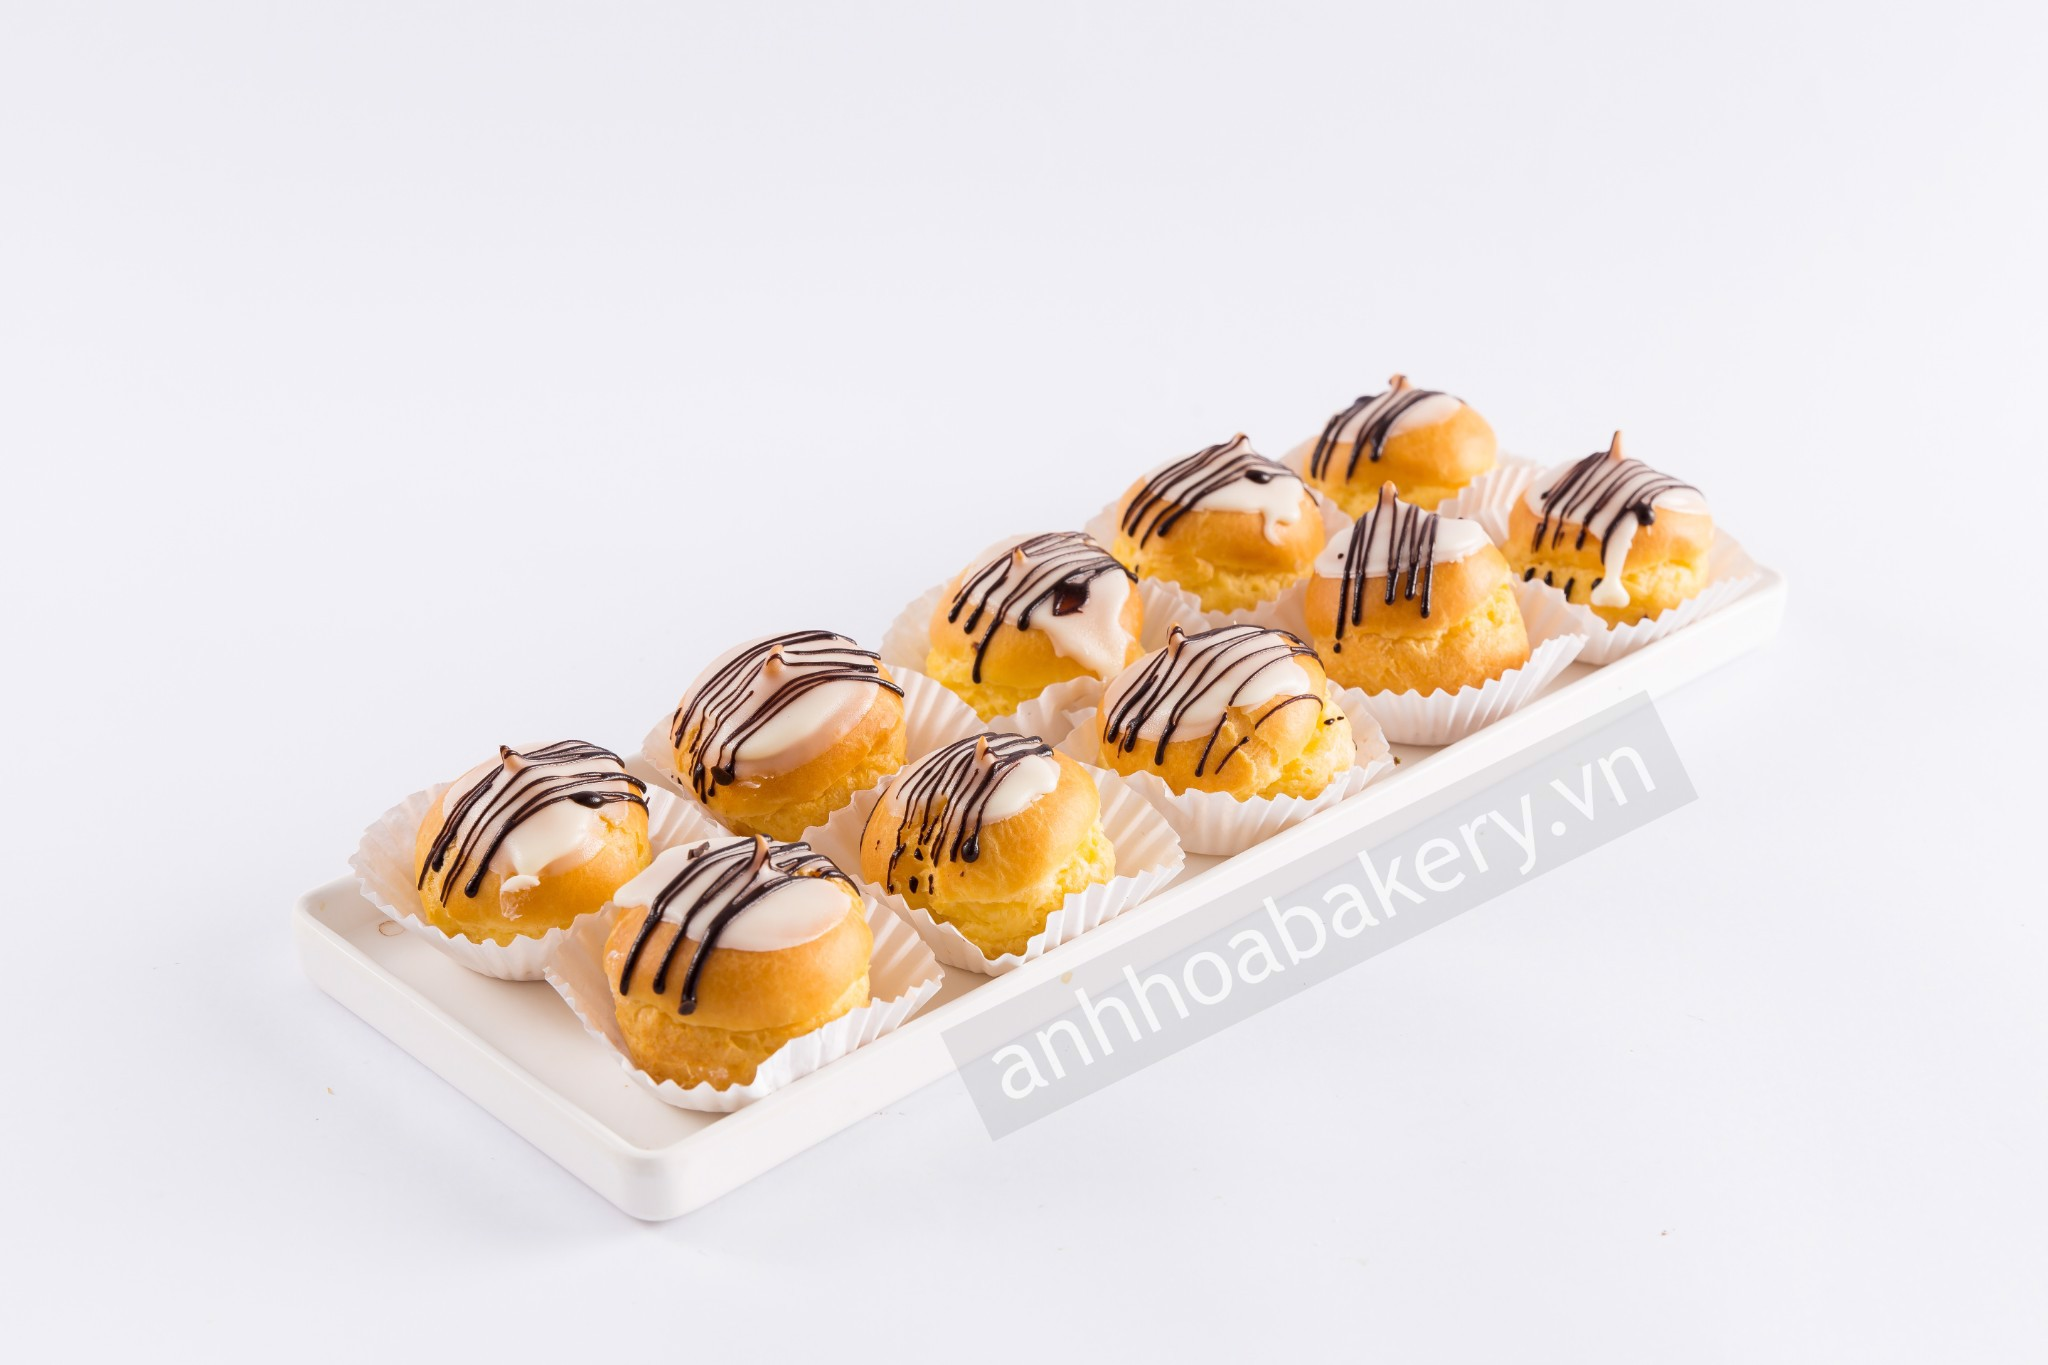 BÁNH SUKEM - CREAM PUFFS